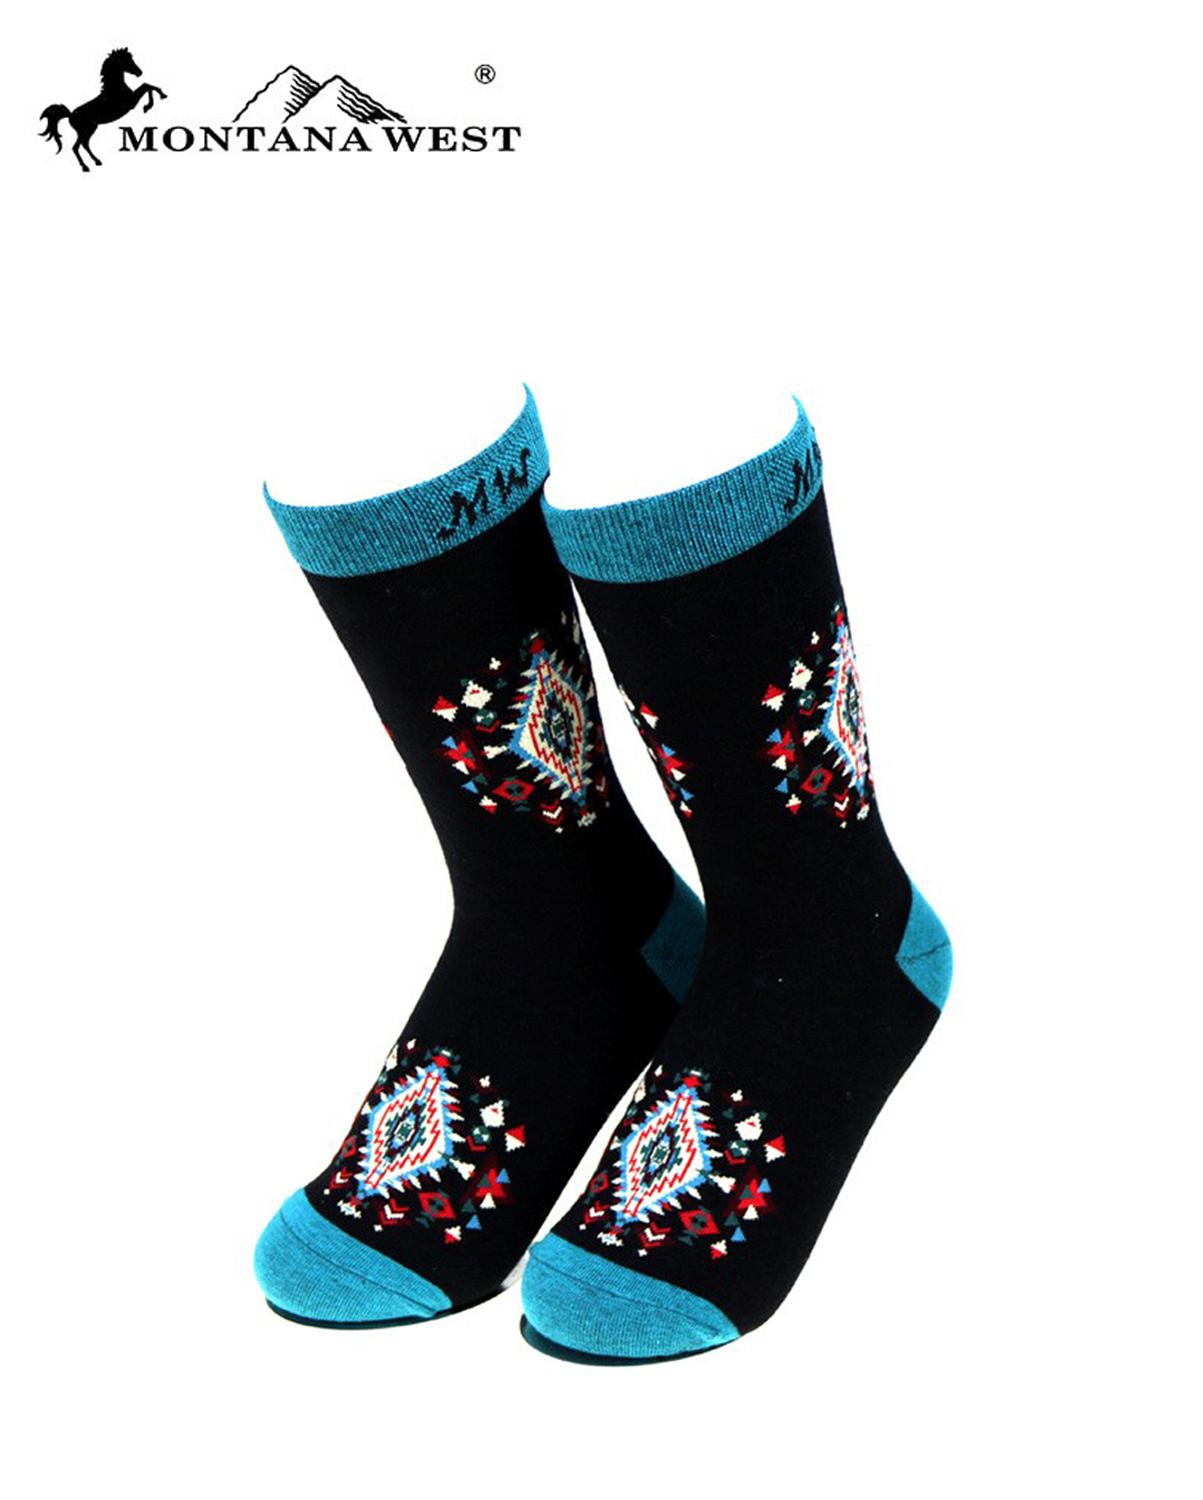 SK006(BKTQ)-MW-wholesale-montana-west-socks-aztec-crew-height-one-size-12pcs-comfortable-soft-(0).jpg